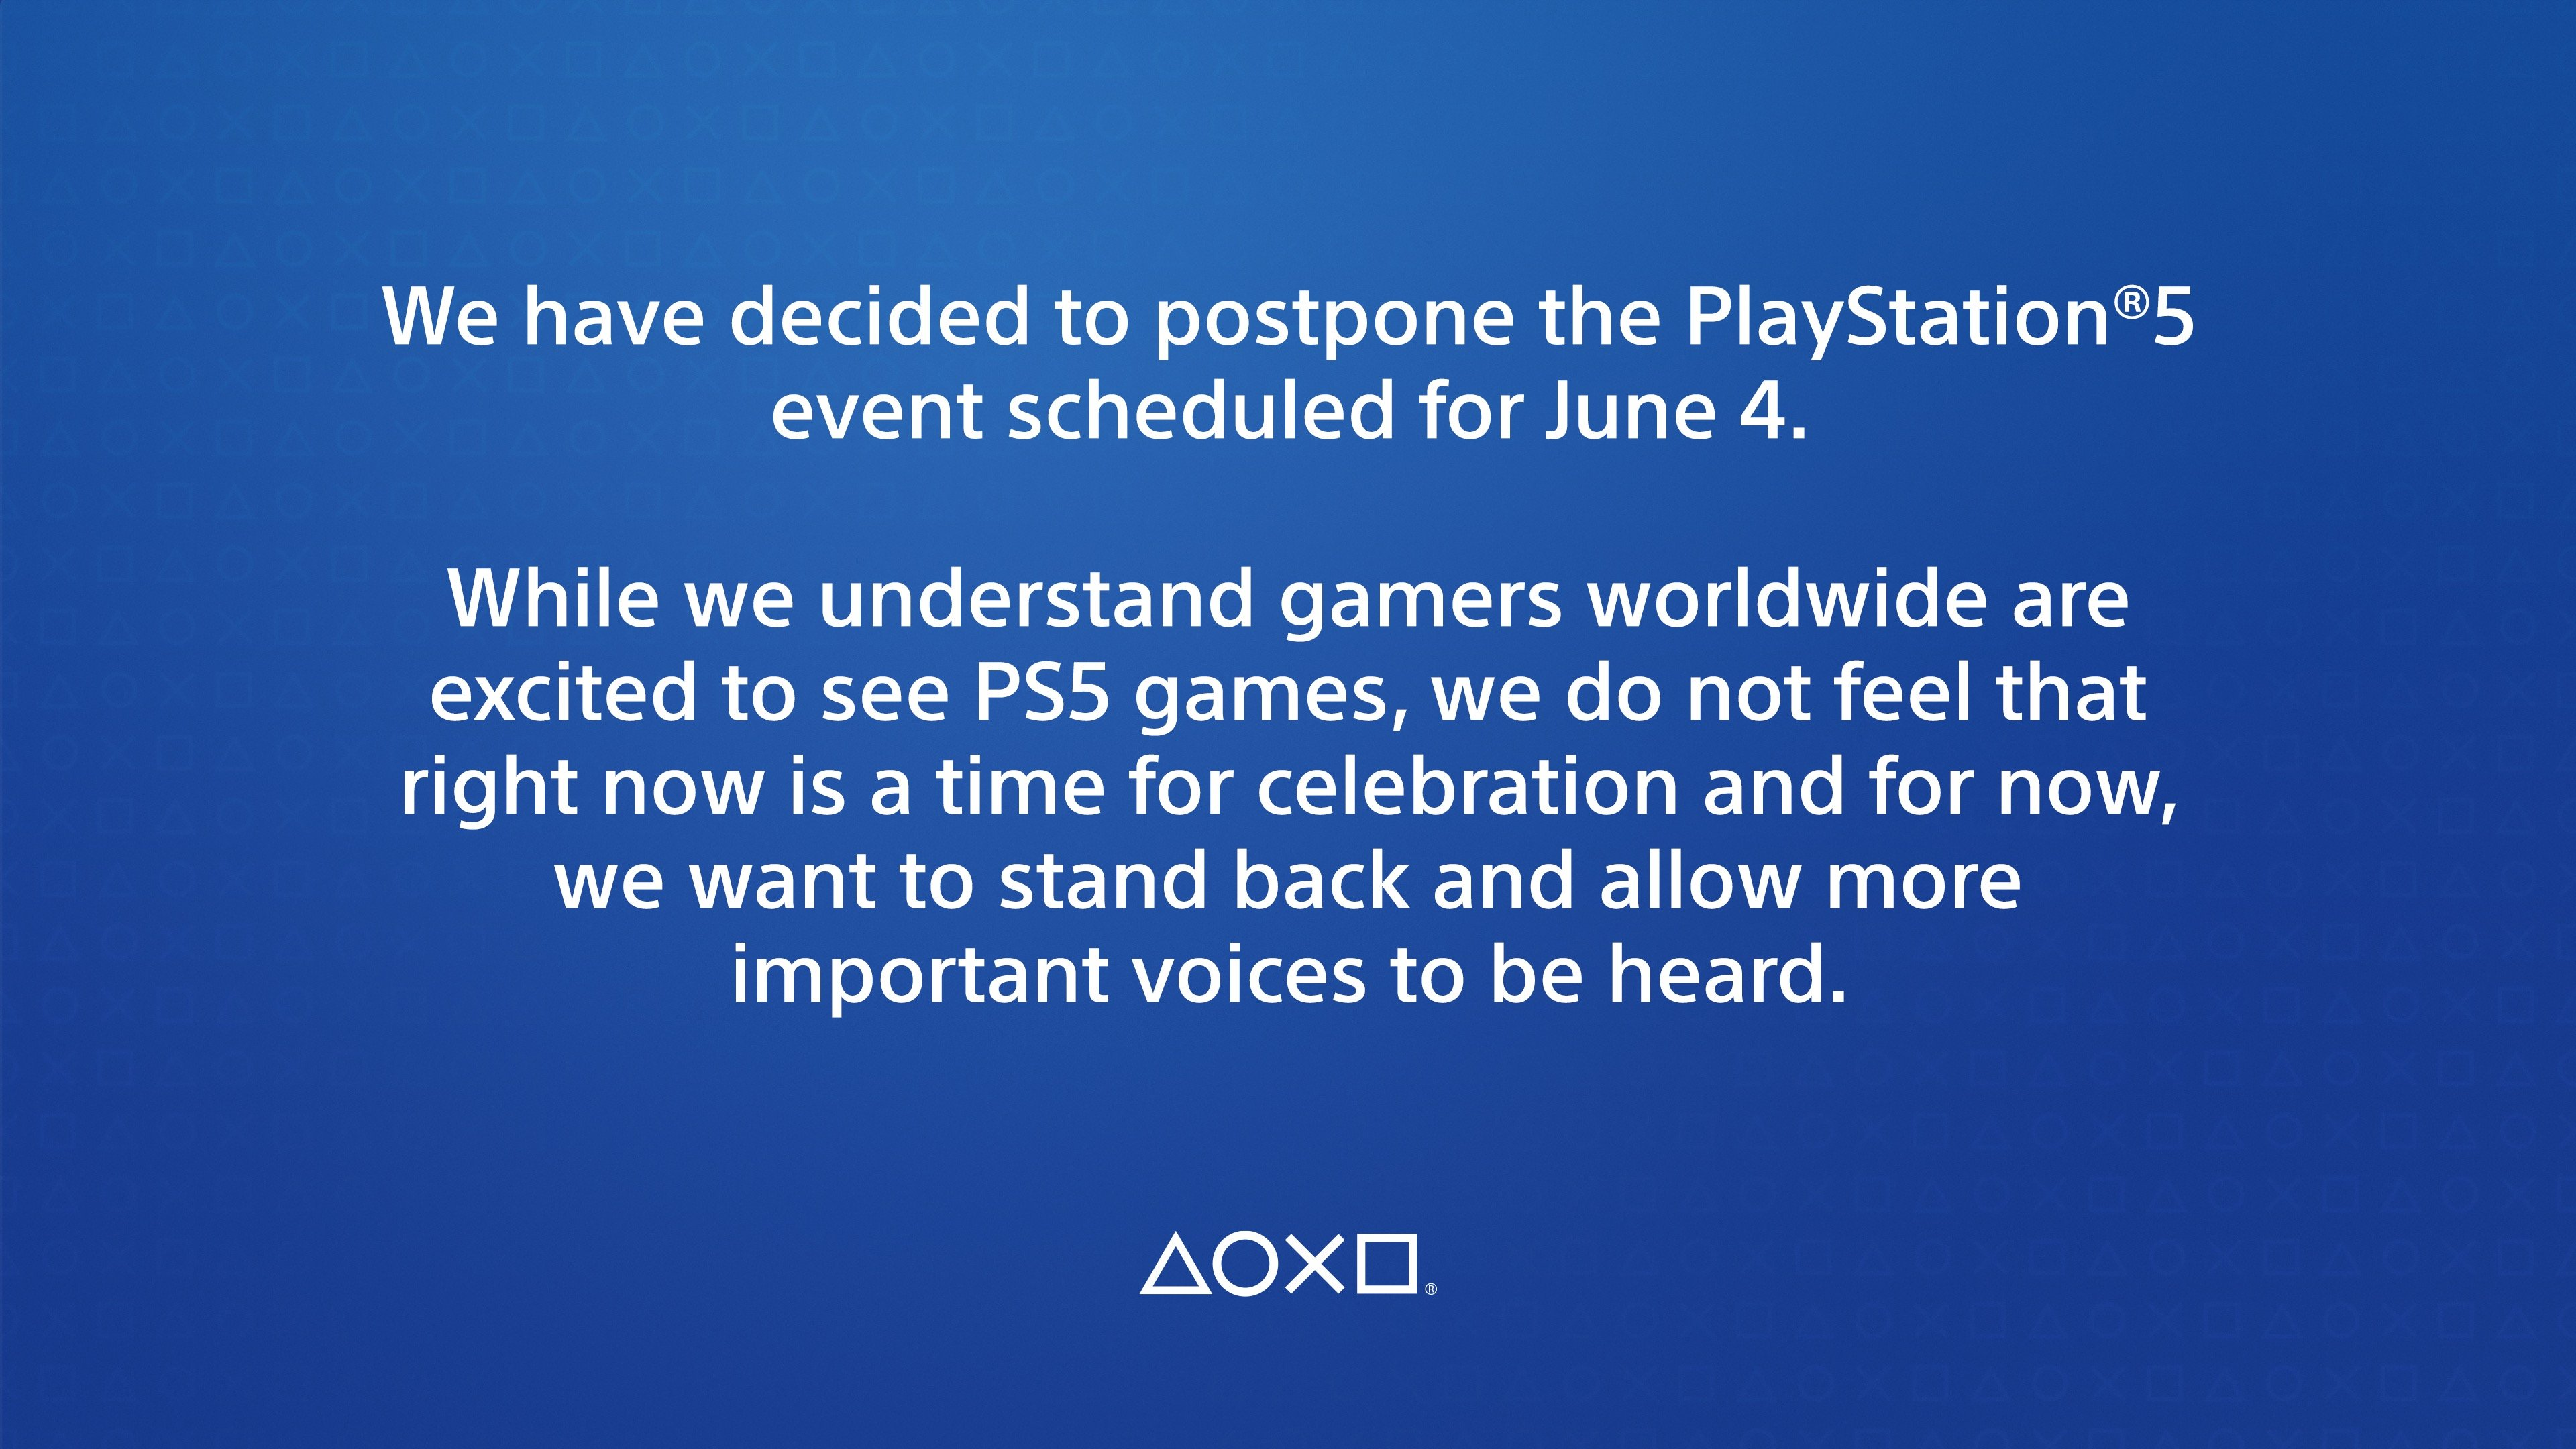 PS5 reveal on June 4 postponed by Sony